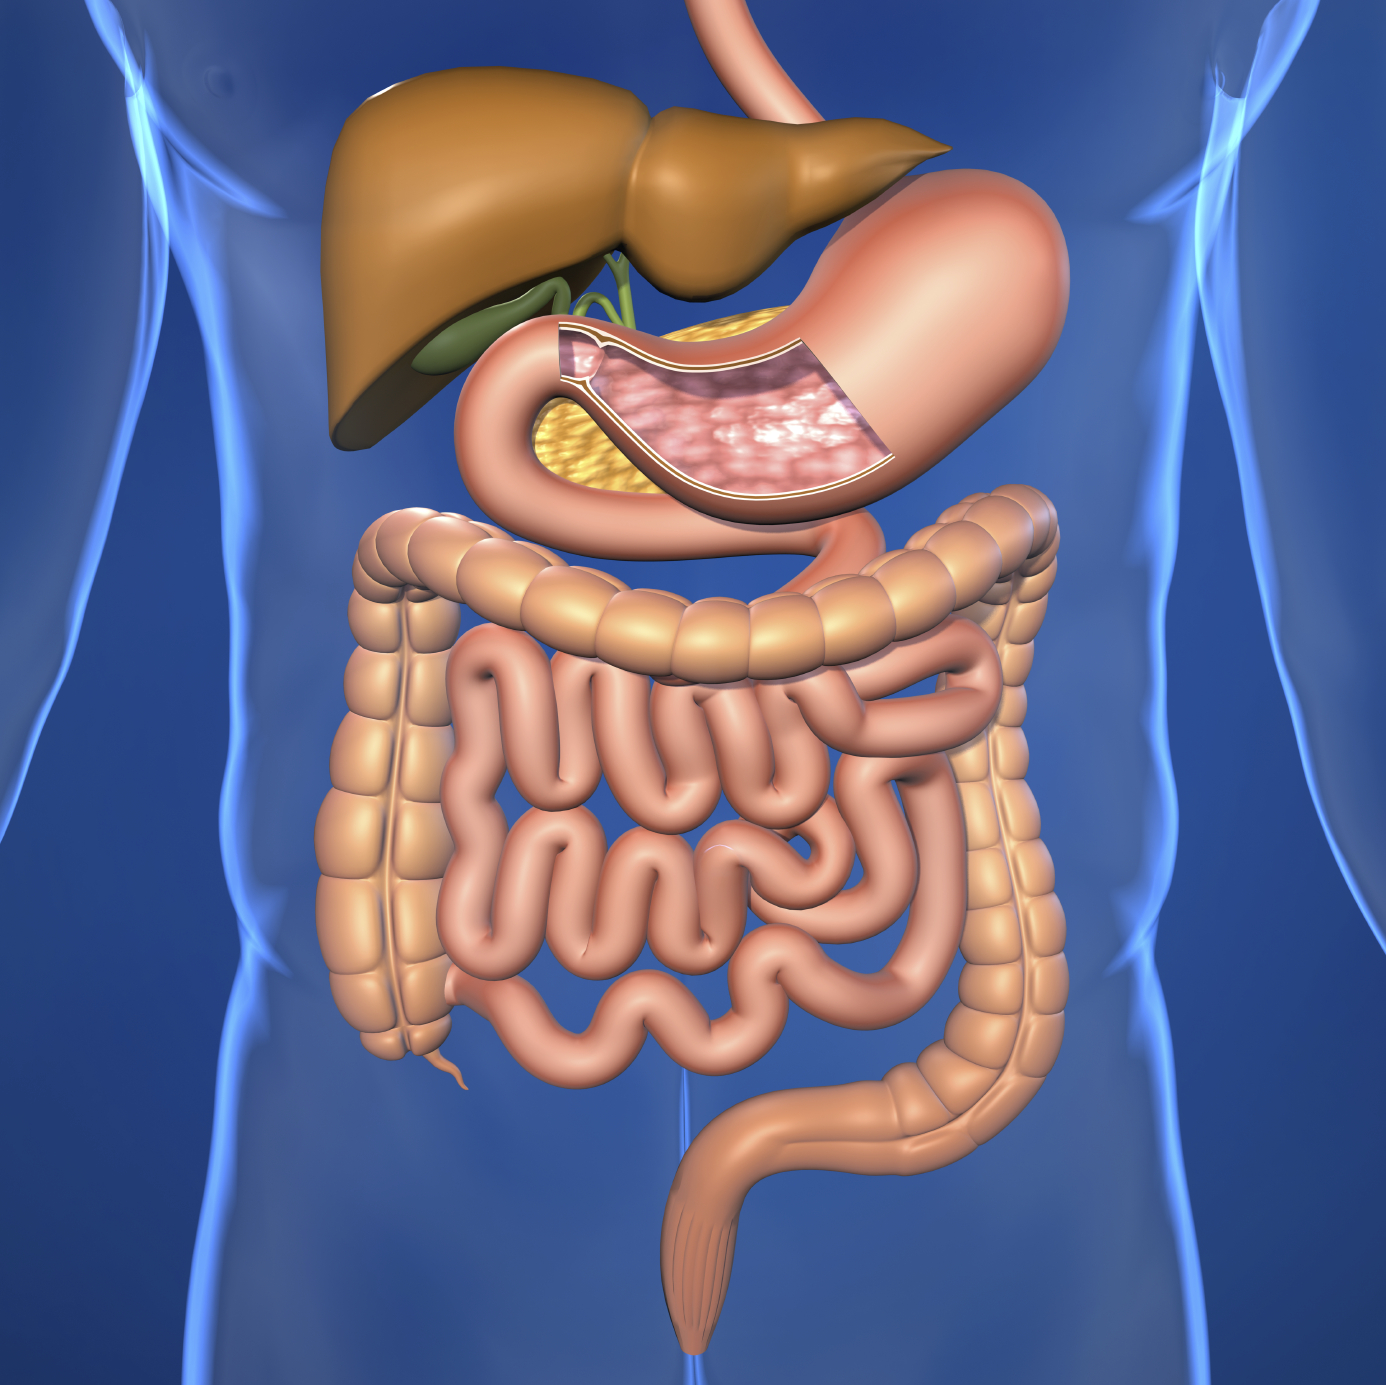 Human Digestive System For Ks1 And Ks2 Children